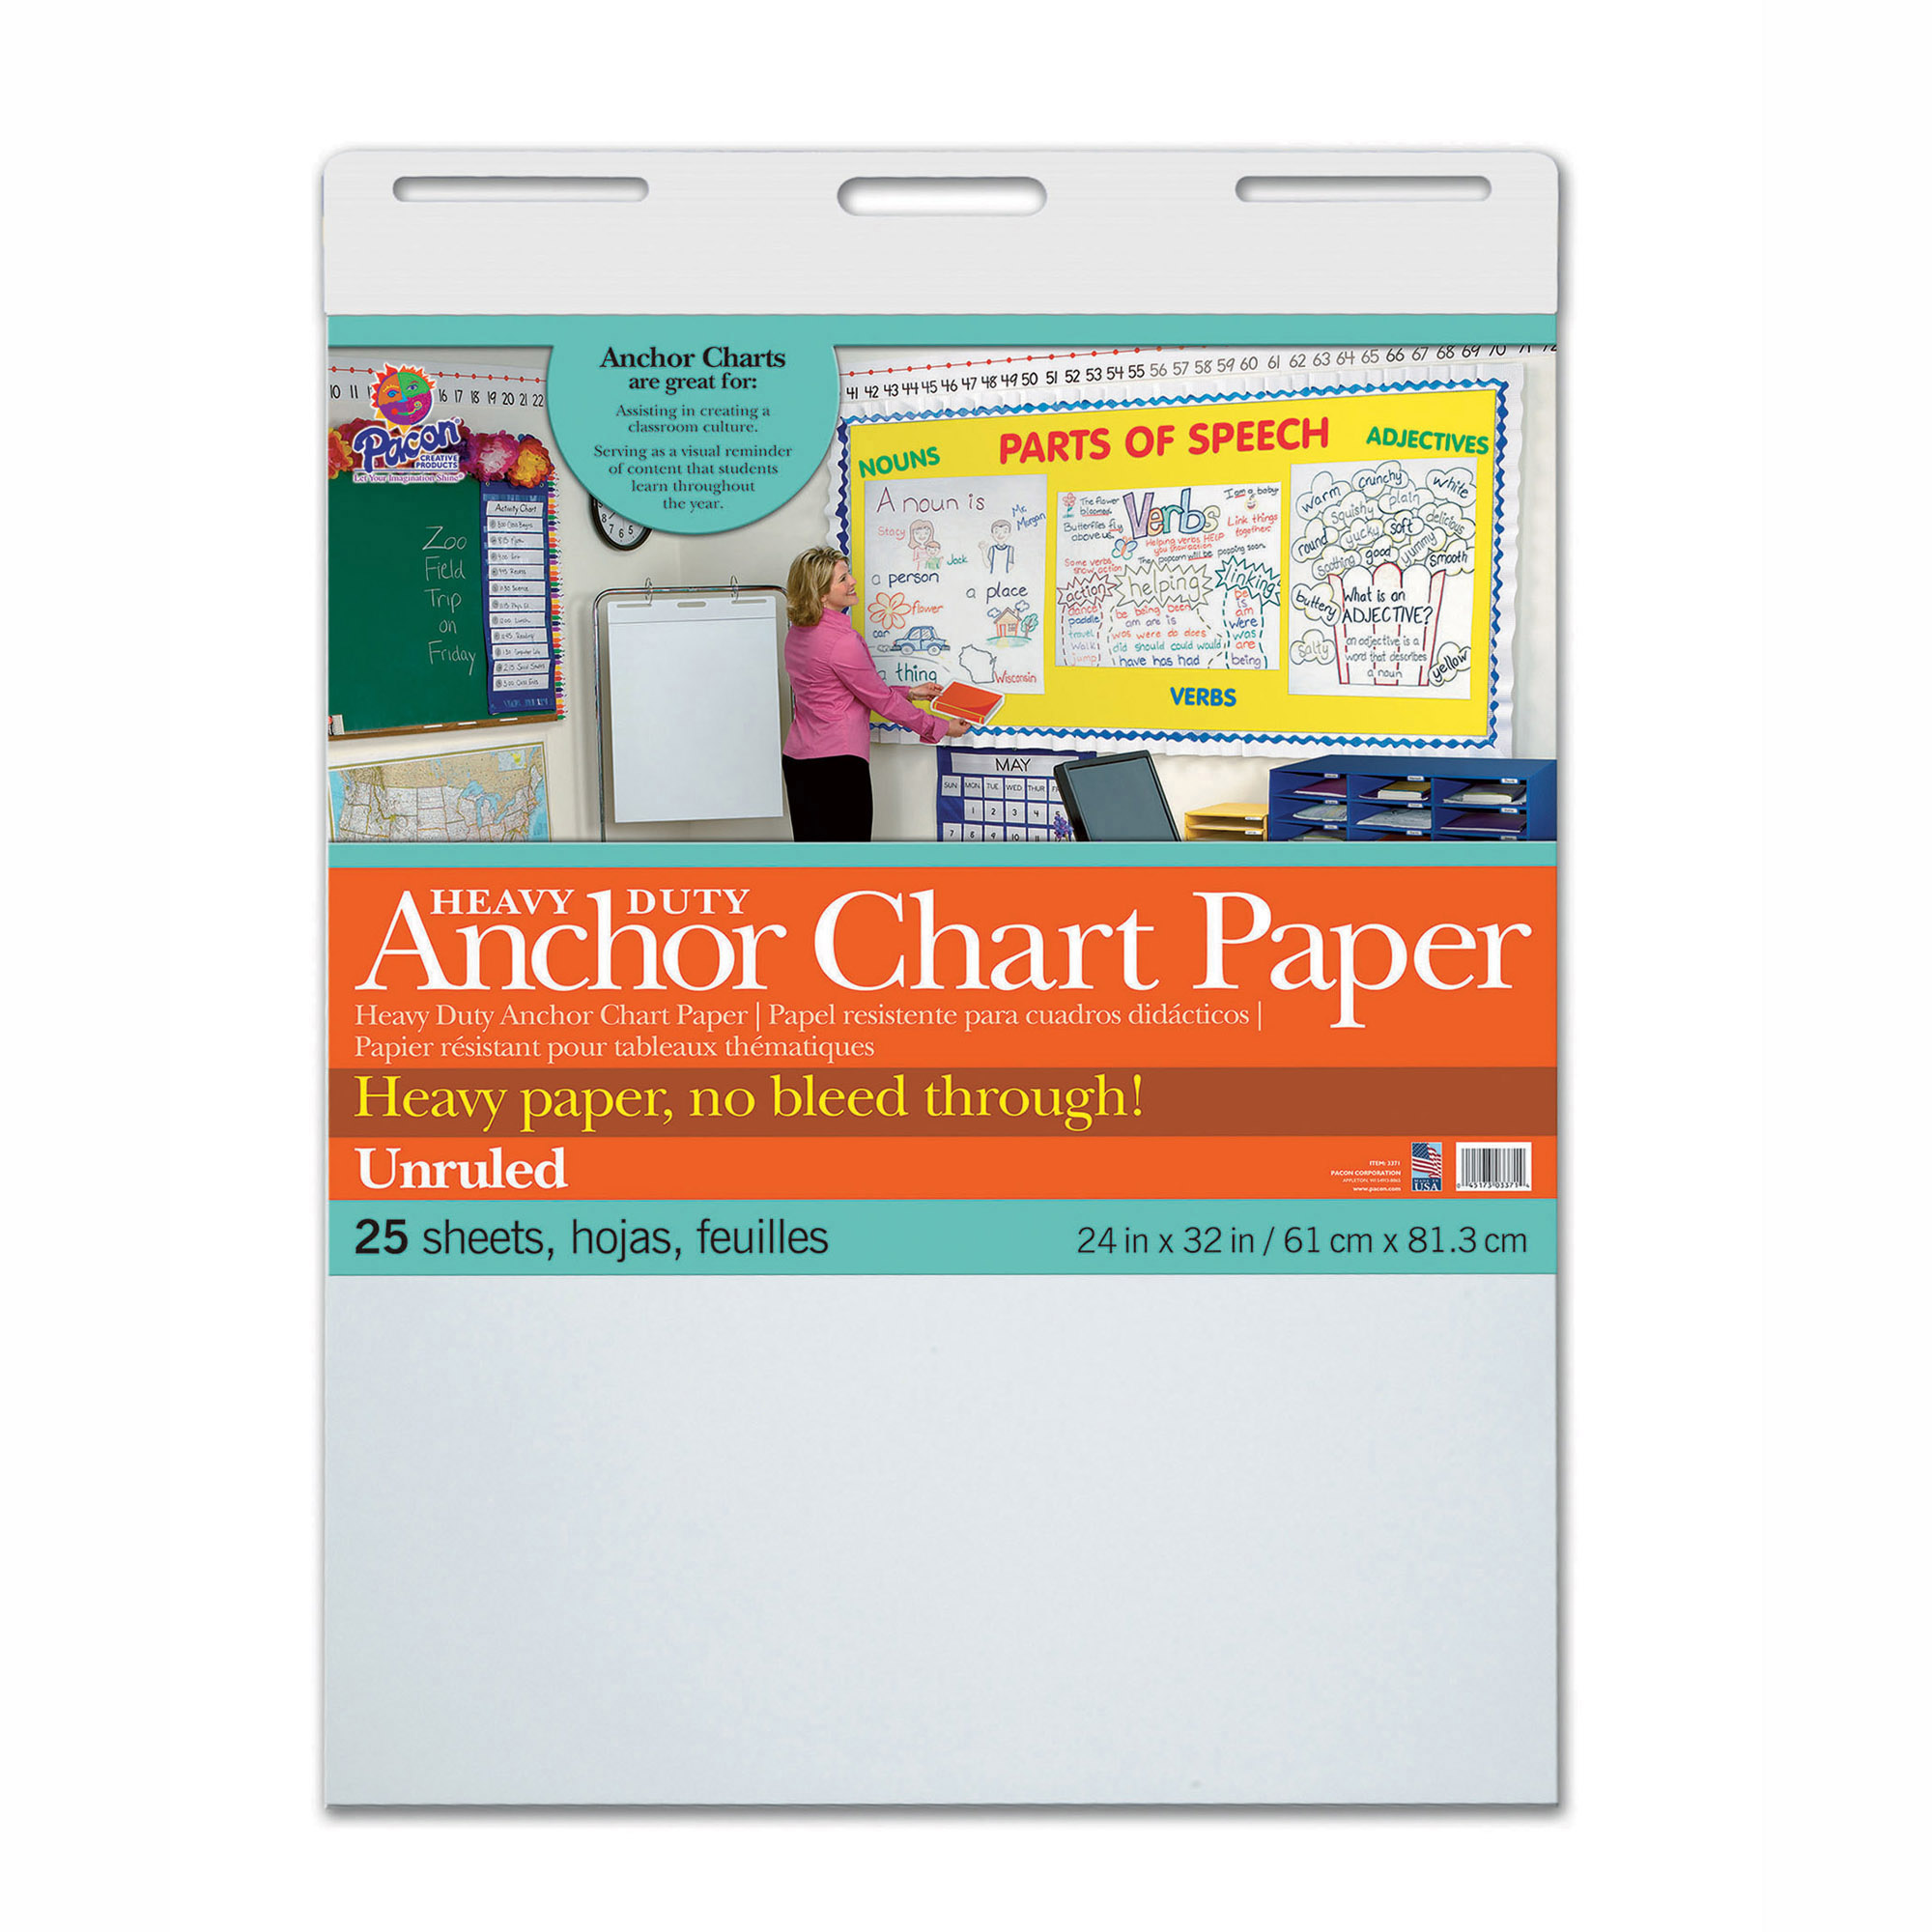 "Heavy Duty Anchor Chart Paper, Unruled, 24""W x 32""L, 25 Sheets"